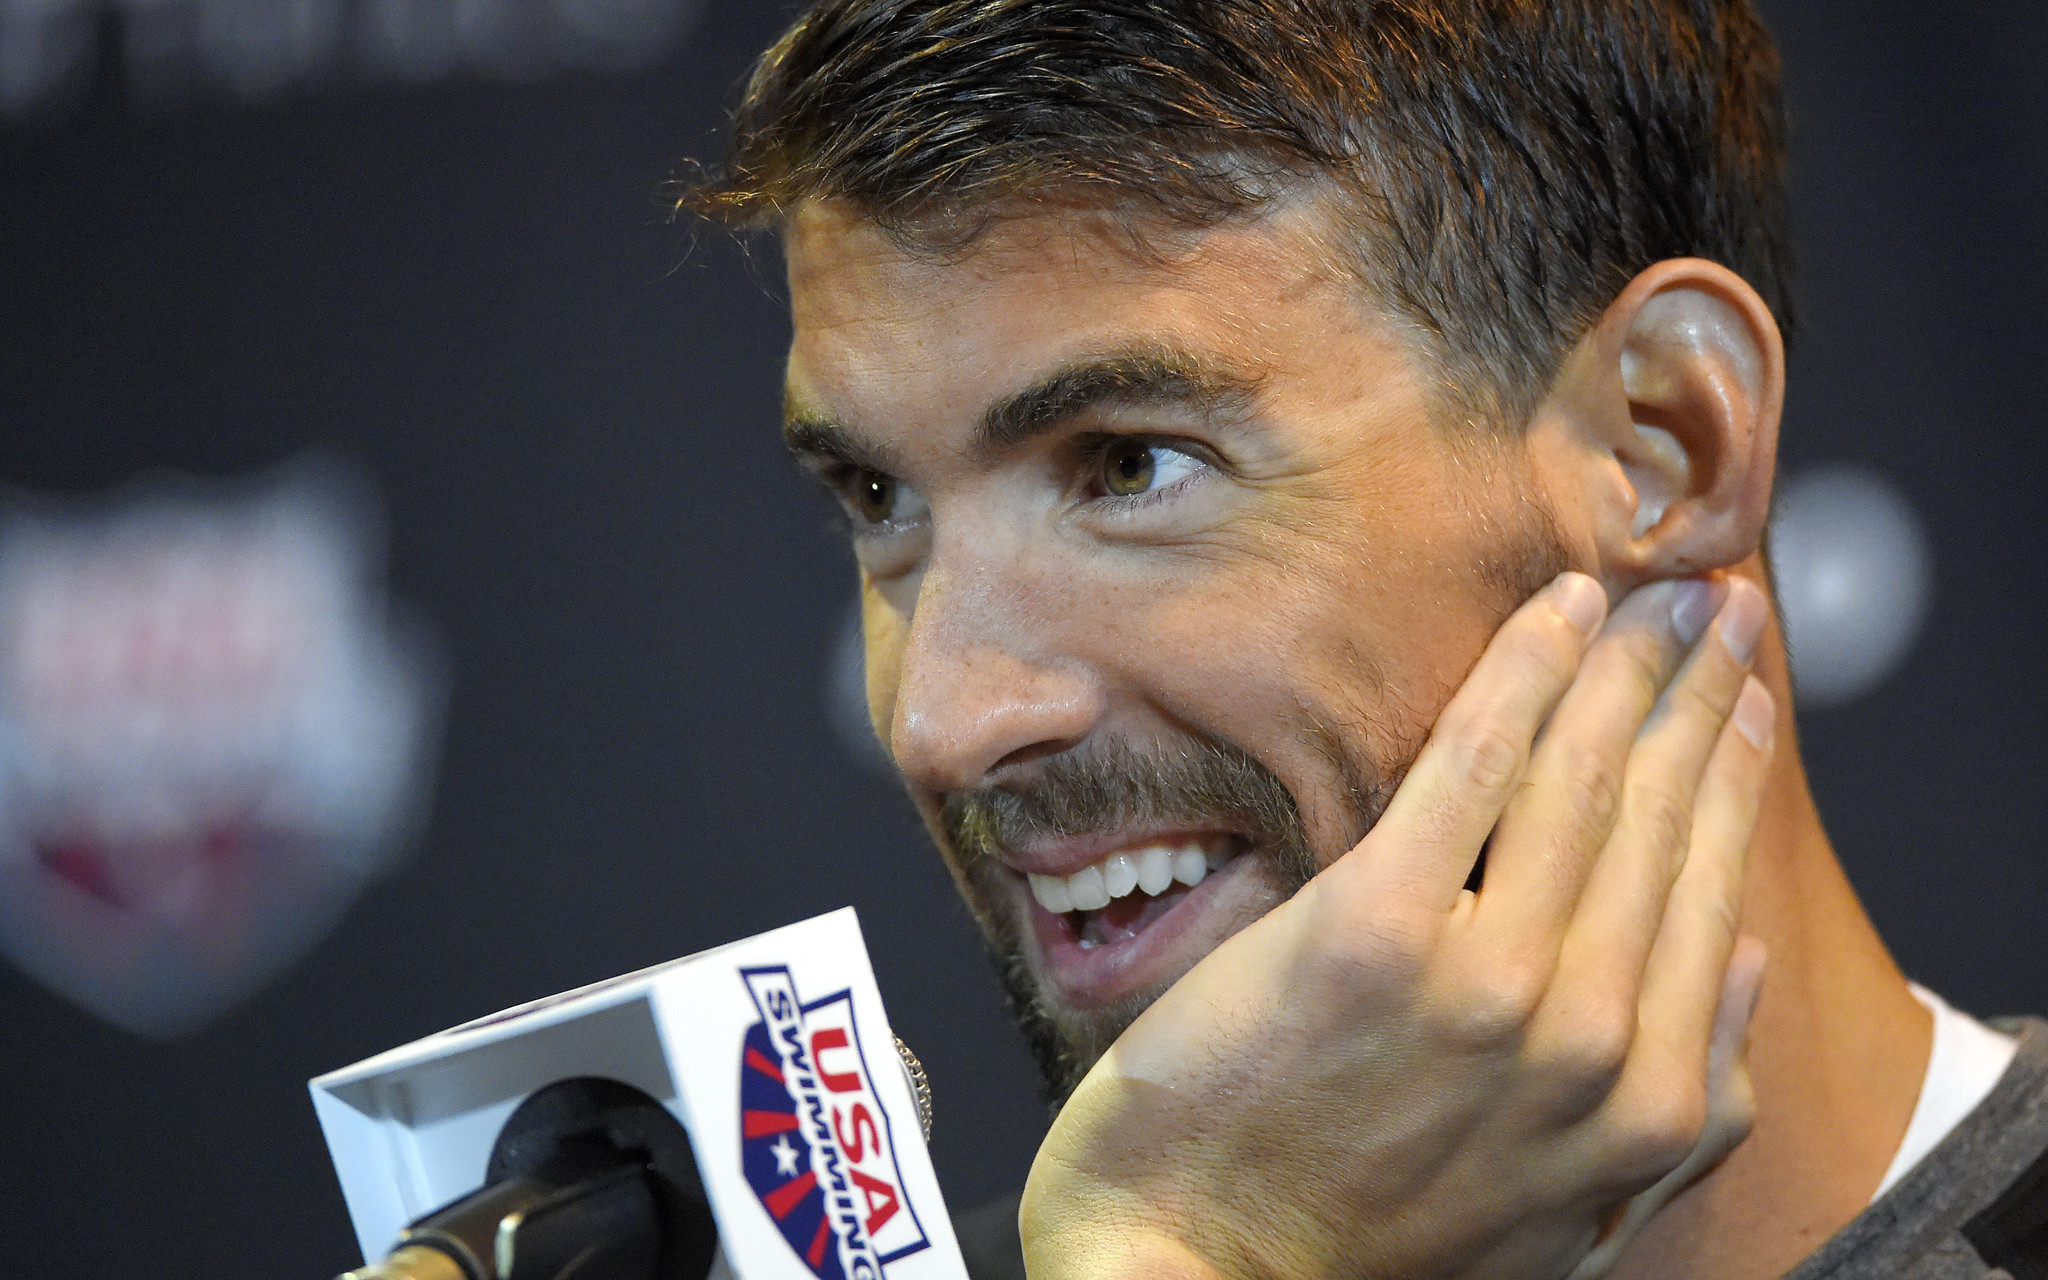 Michael Phelps At Ease As He Prepares For His Last Olympic Swimming